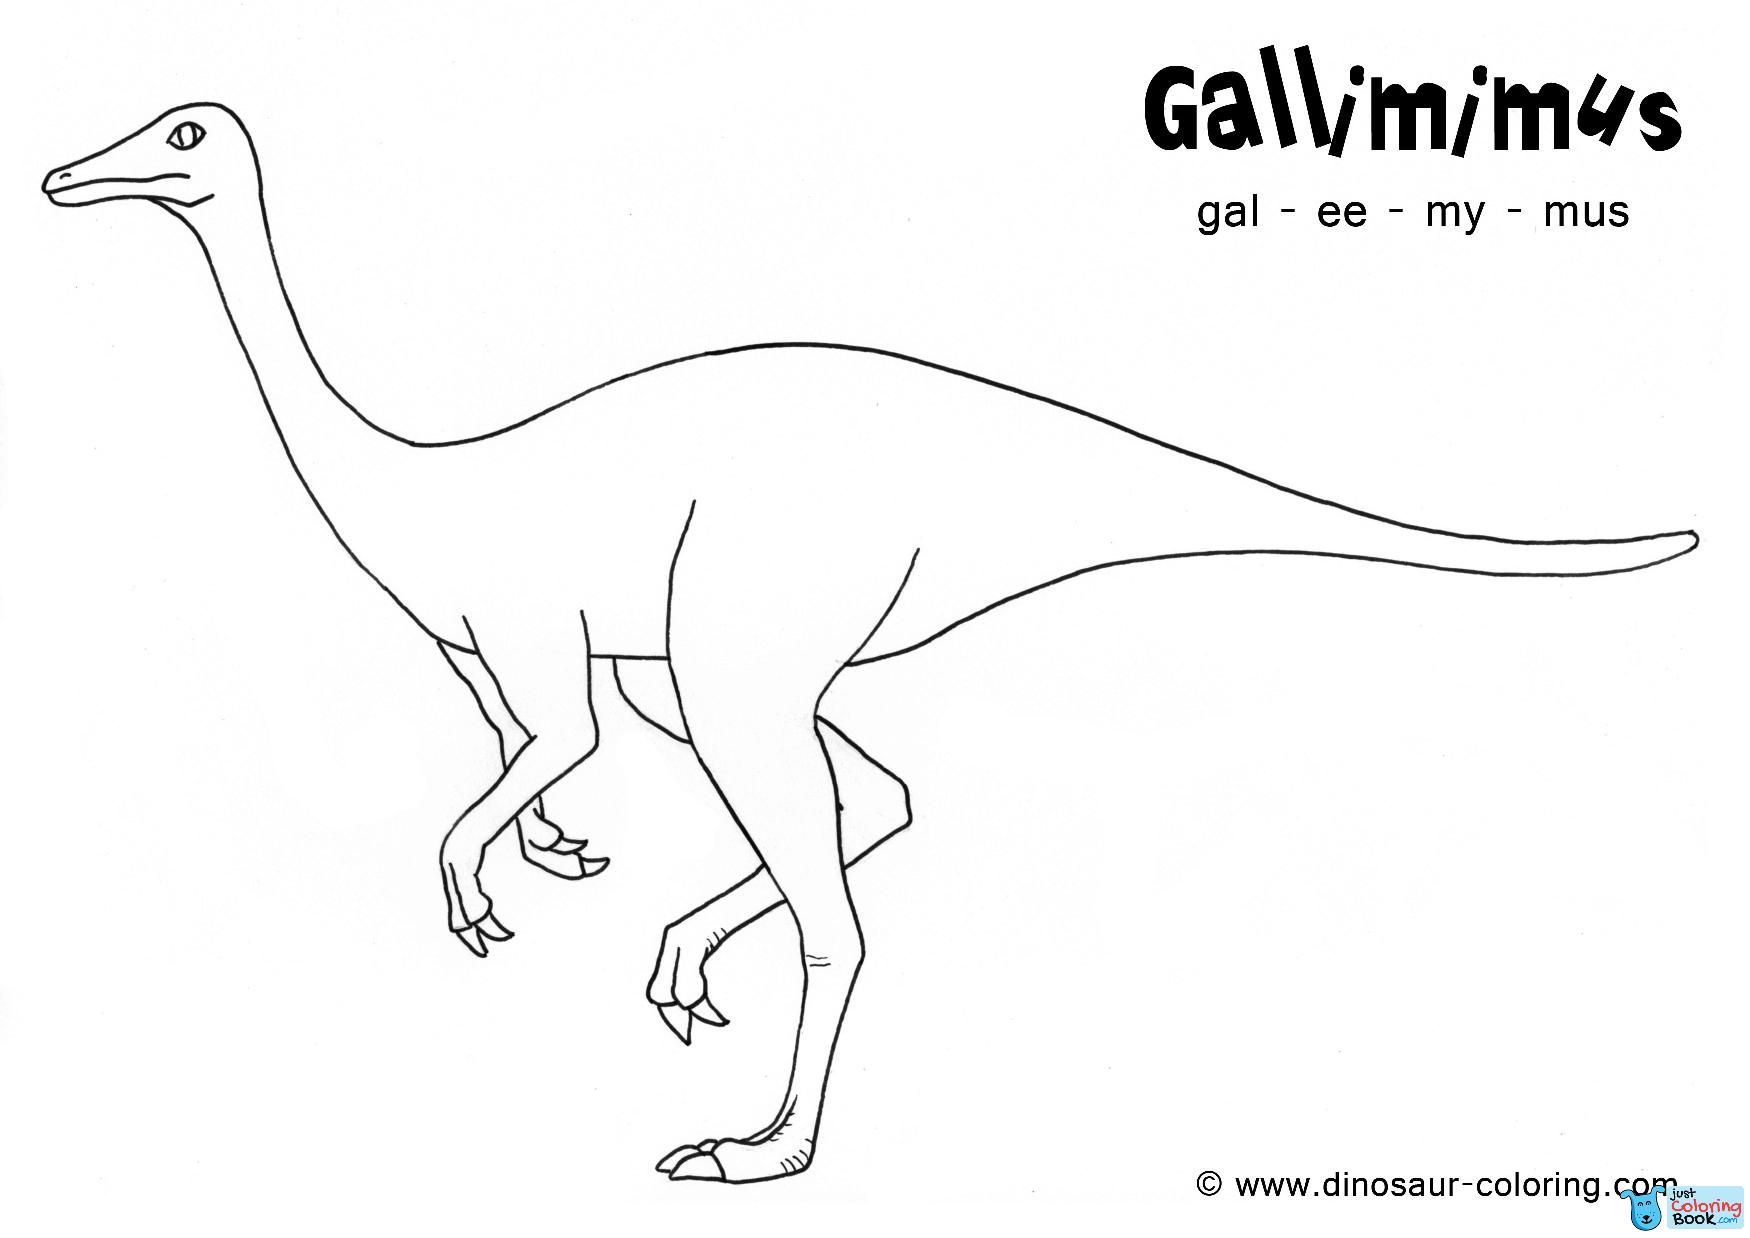 Gallimimus Coloring Intended For Free Download Gallimimus Dinosaur Coloring Pages